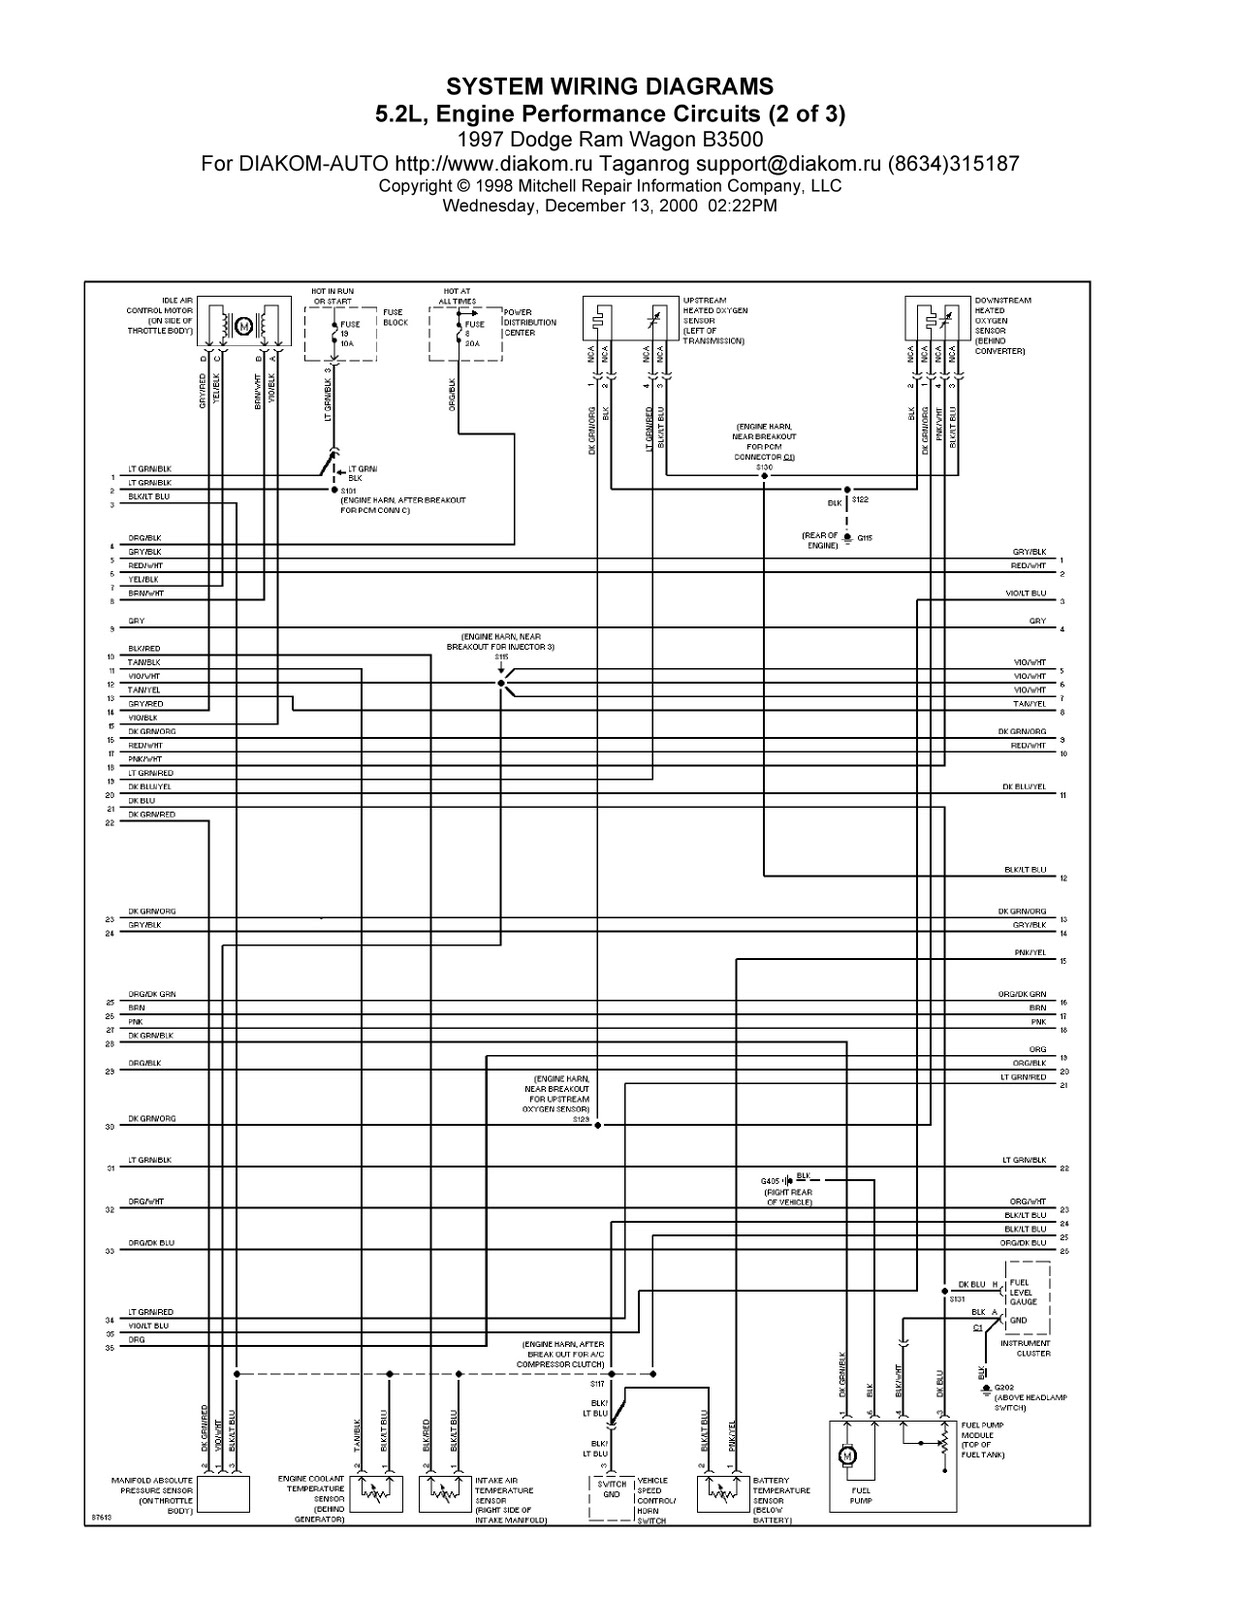 small resolution of dodge power wagon engine harness diagram wiring library1997 dodge ram wagon b3500 system wiring diagram 5